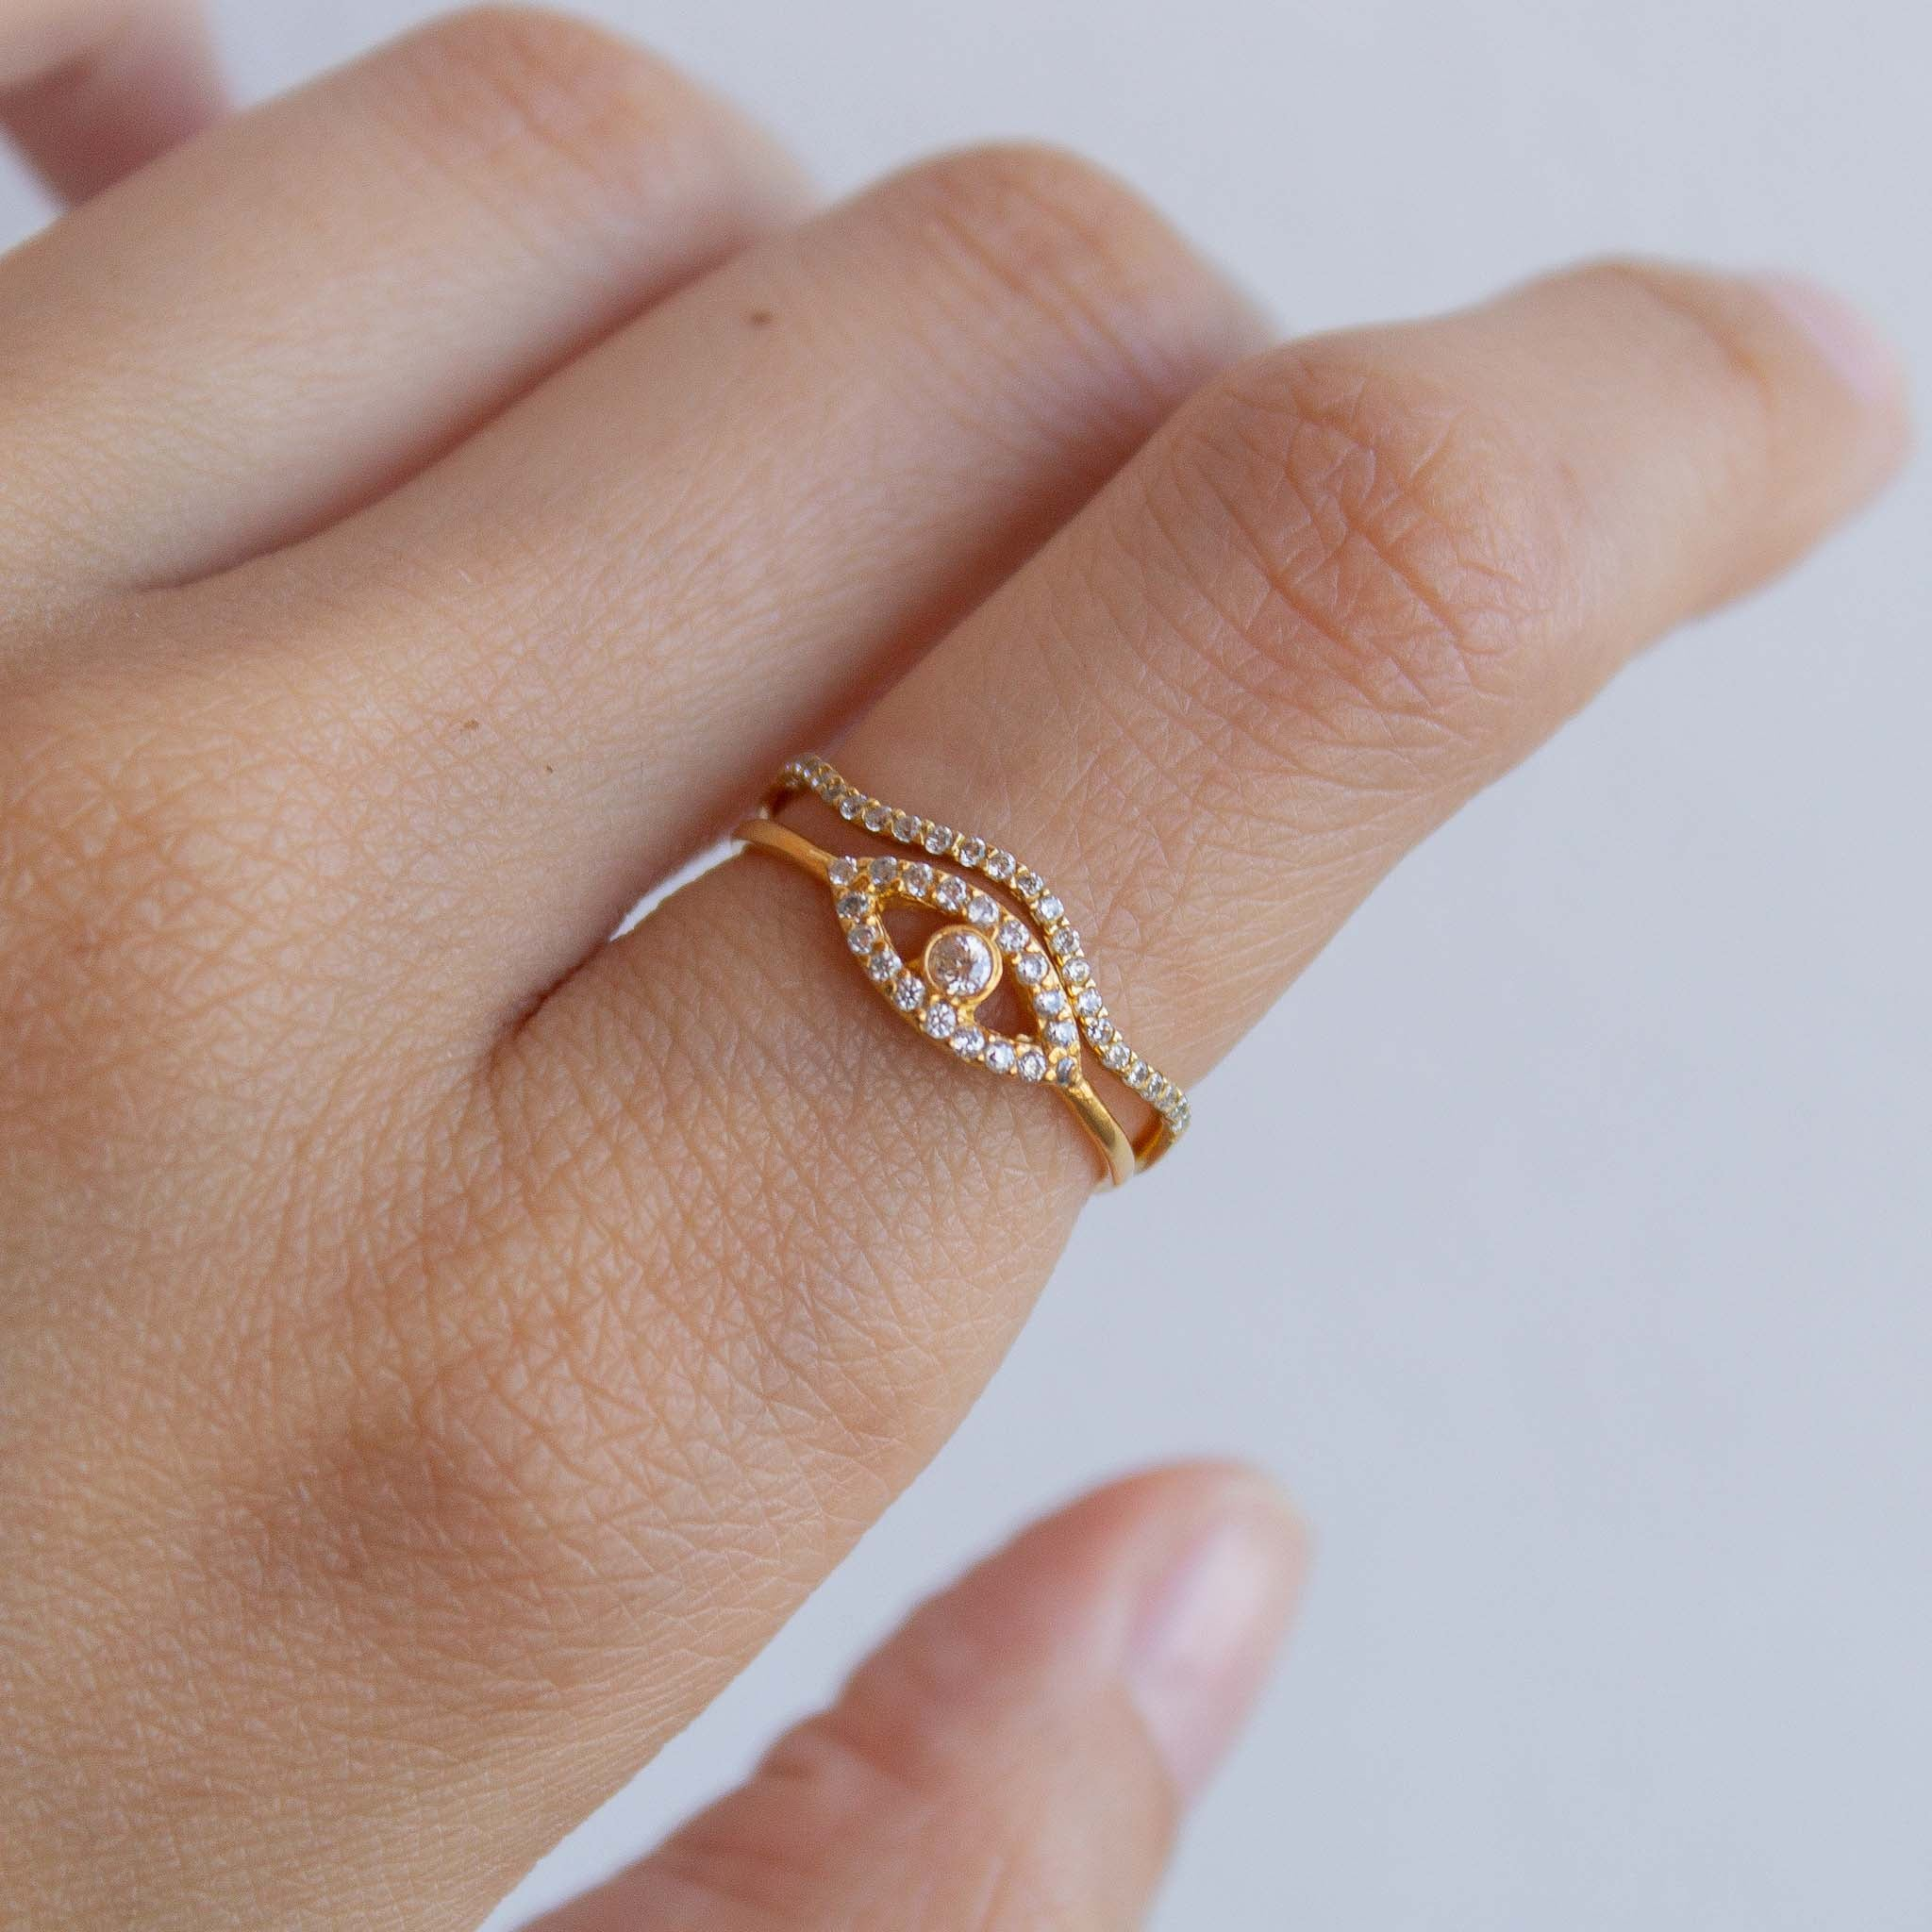 dainty-ring-stacking-ideas